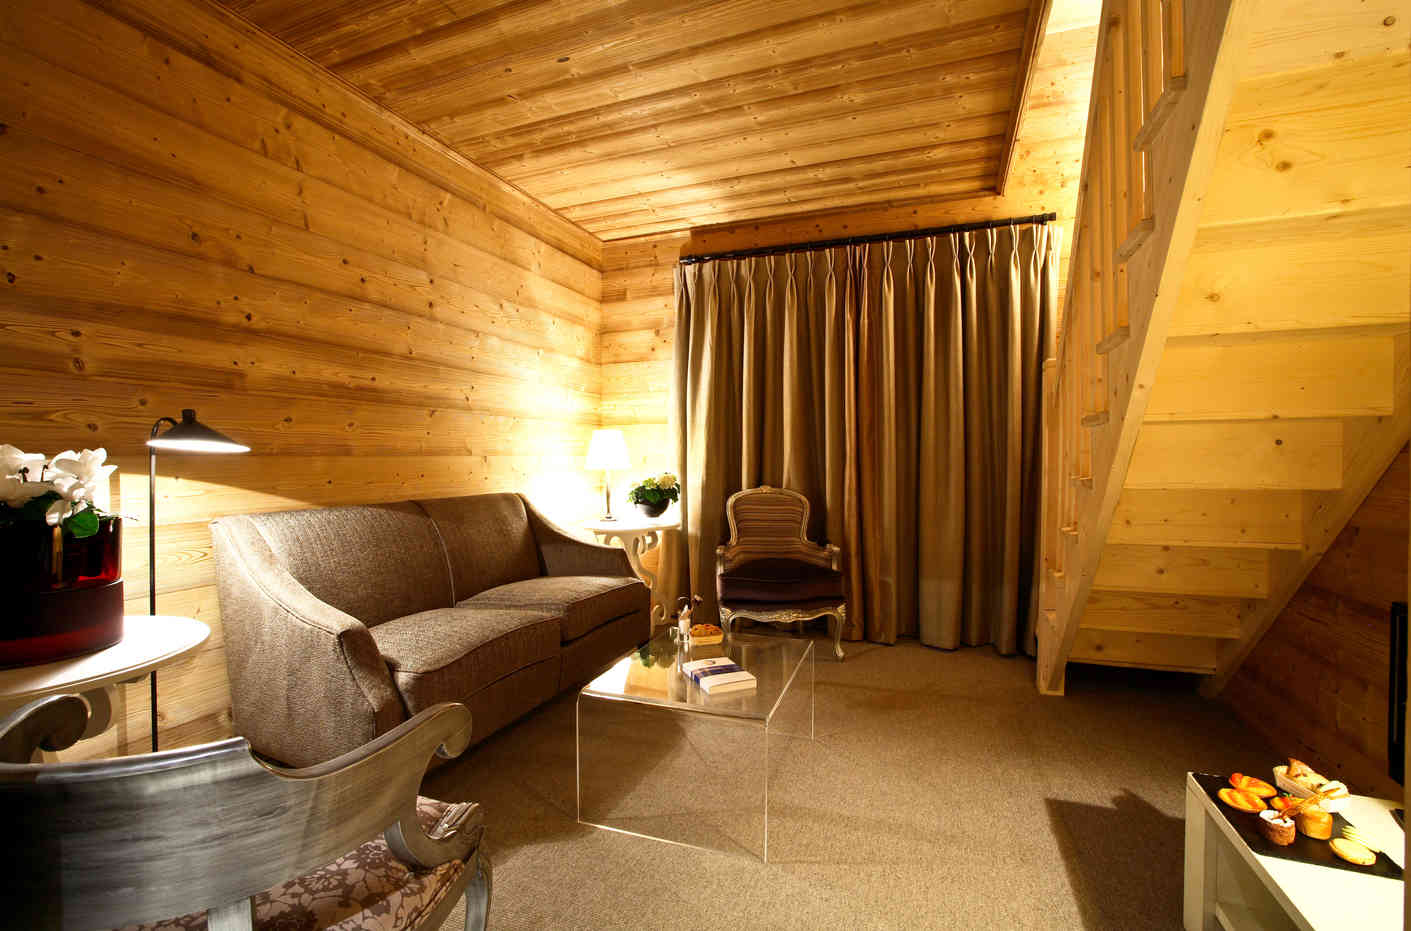 Le Chalet Blanc Bedroom